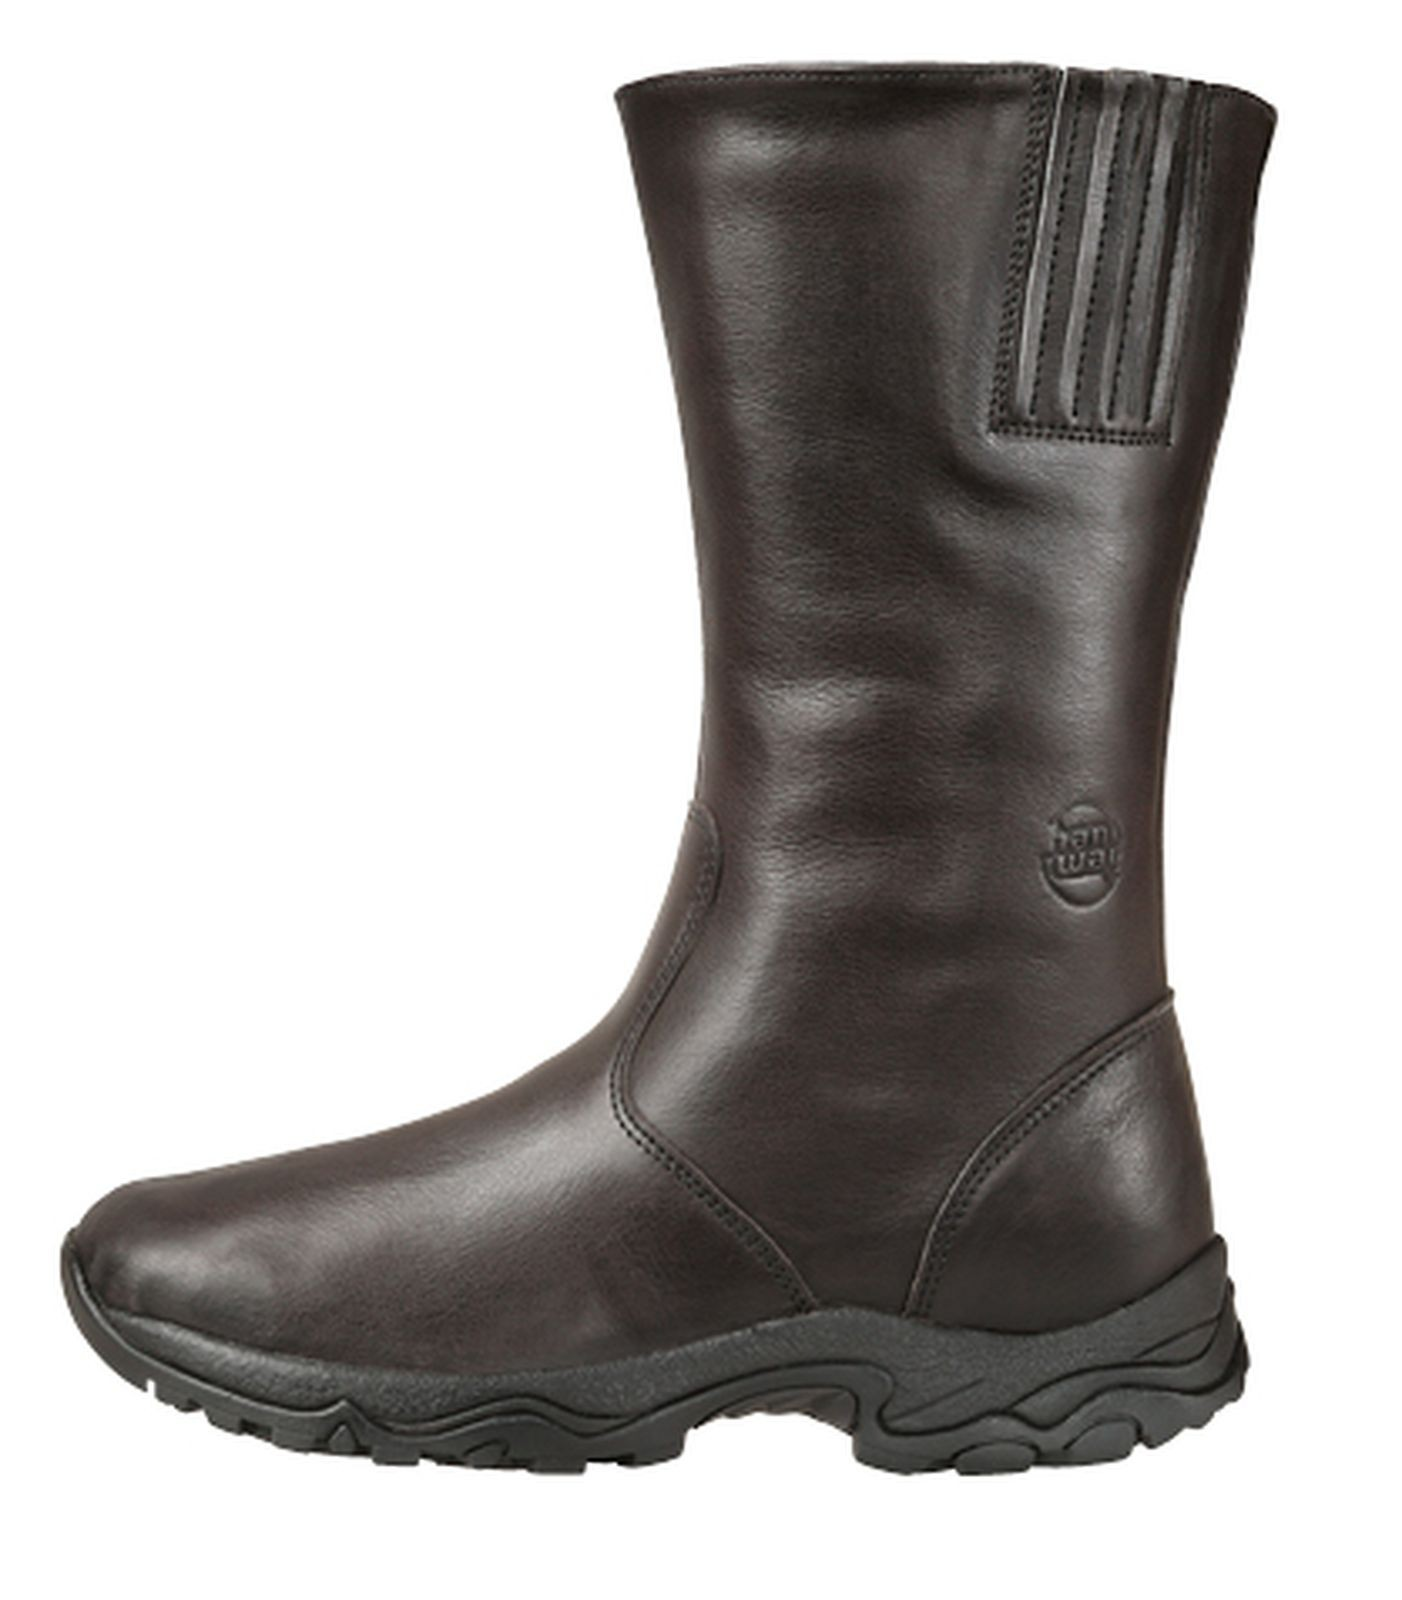 HANWAG Winterstiefel Tannäs Classic Lady Leder Gr.5 graphite